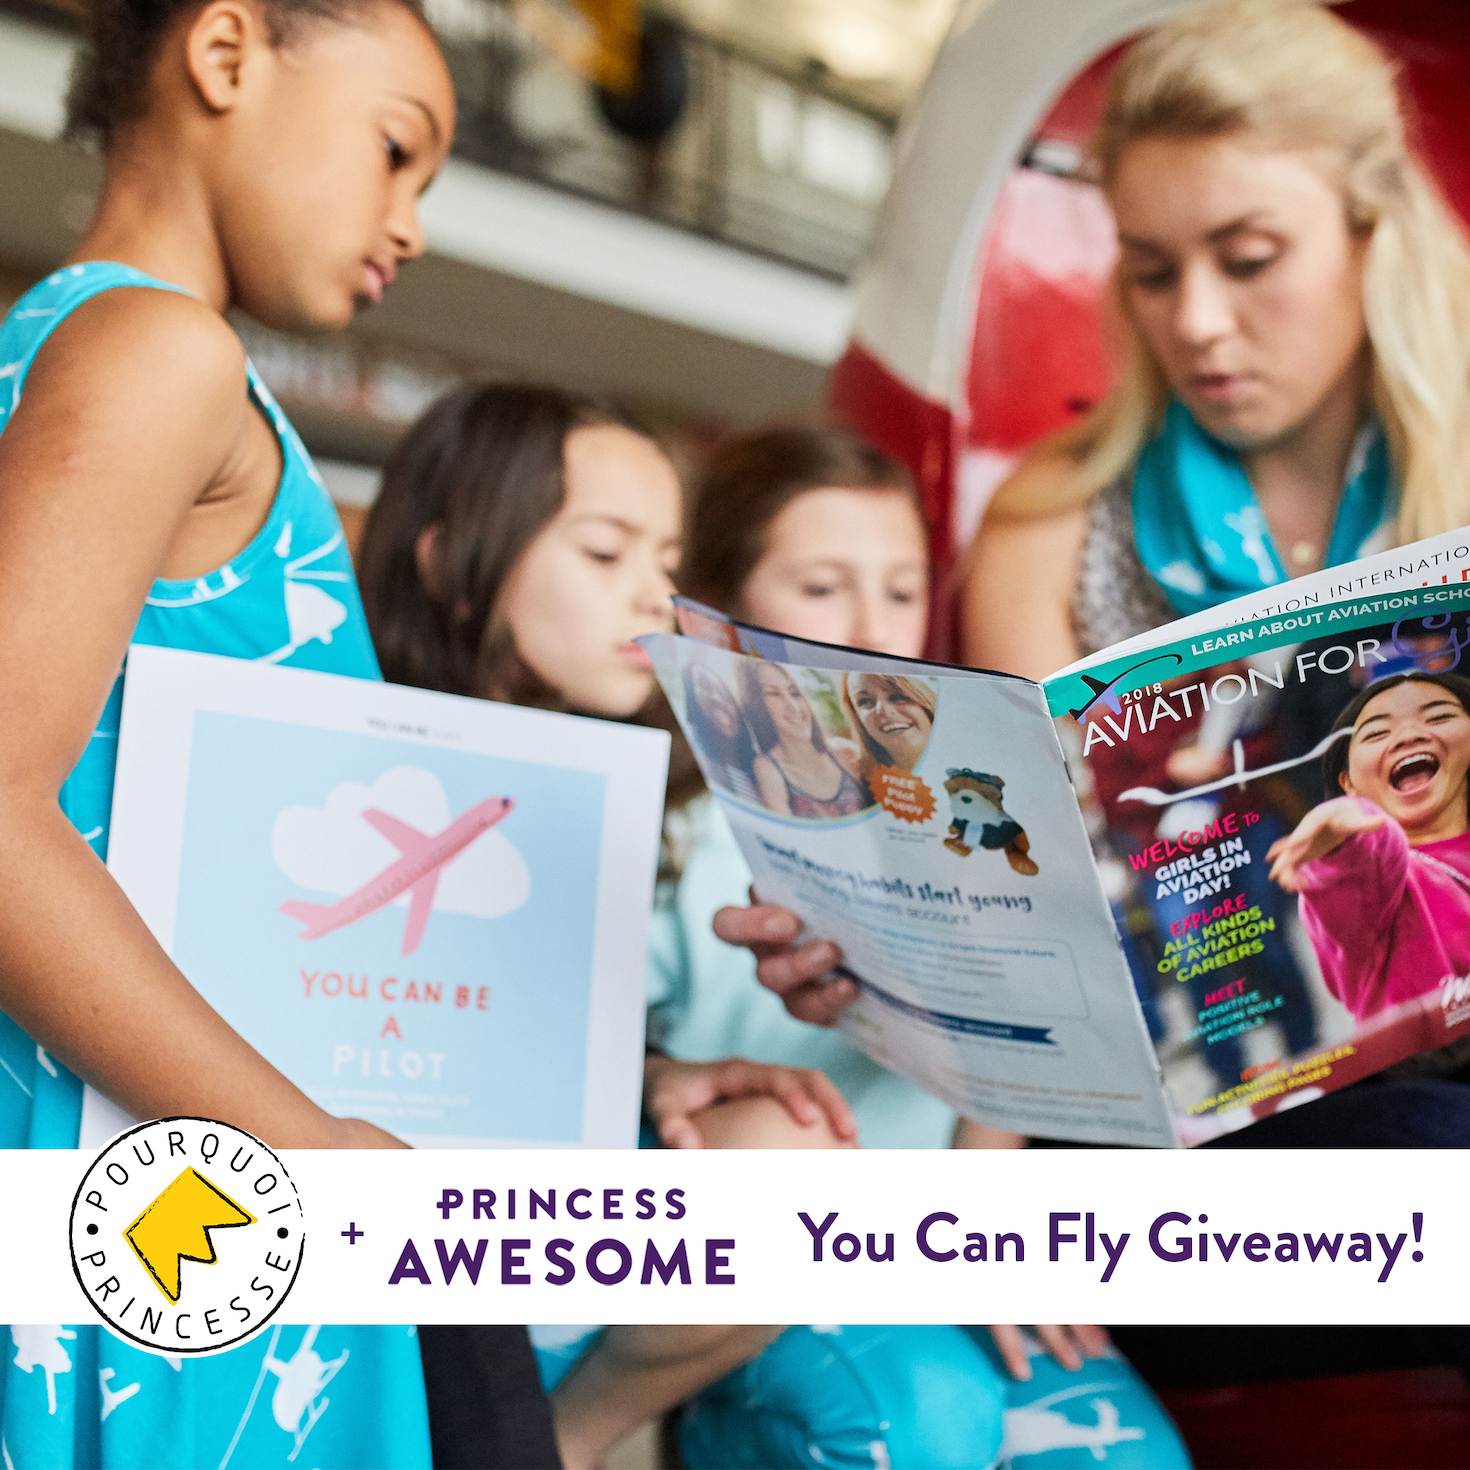 Win a Princess Awesome + Pourquoi Princesse Girls� Aviation Prize Pack Including a Princess Awesome Dress, Pourquoi Princesse Tee, Books, and Magazine  - US and Europe Giveaway Image